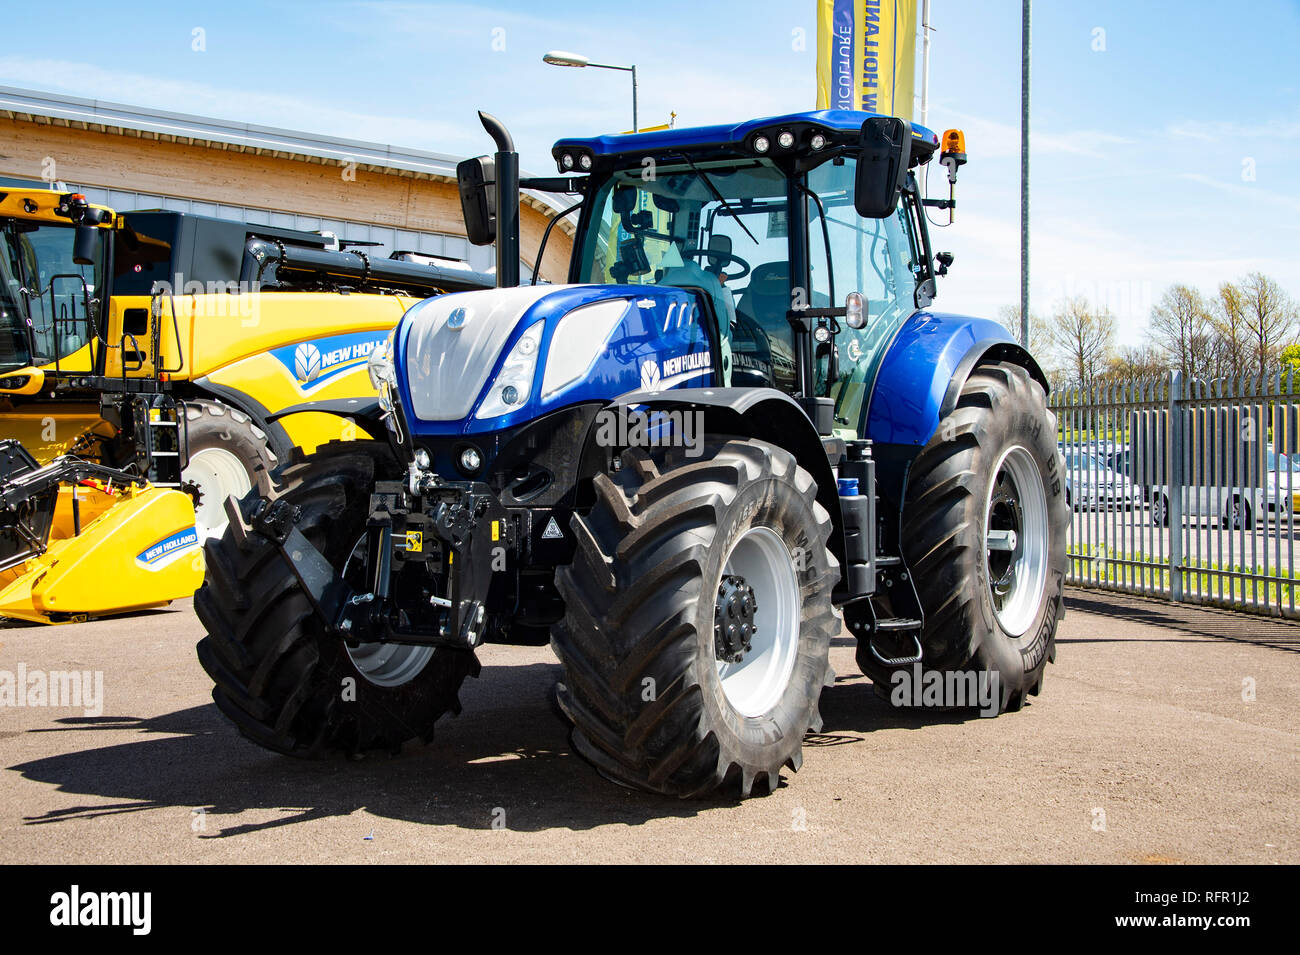 New Holland T7 Tractor Stock Photos & New Holland T7 Tractor